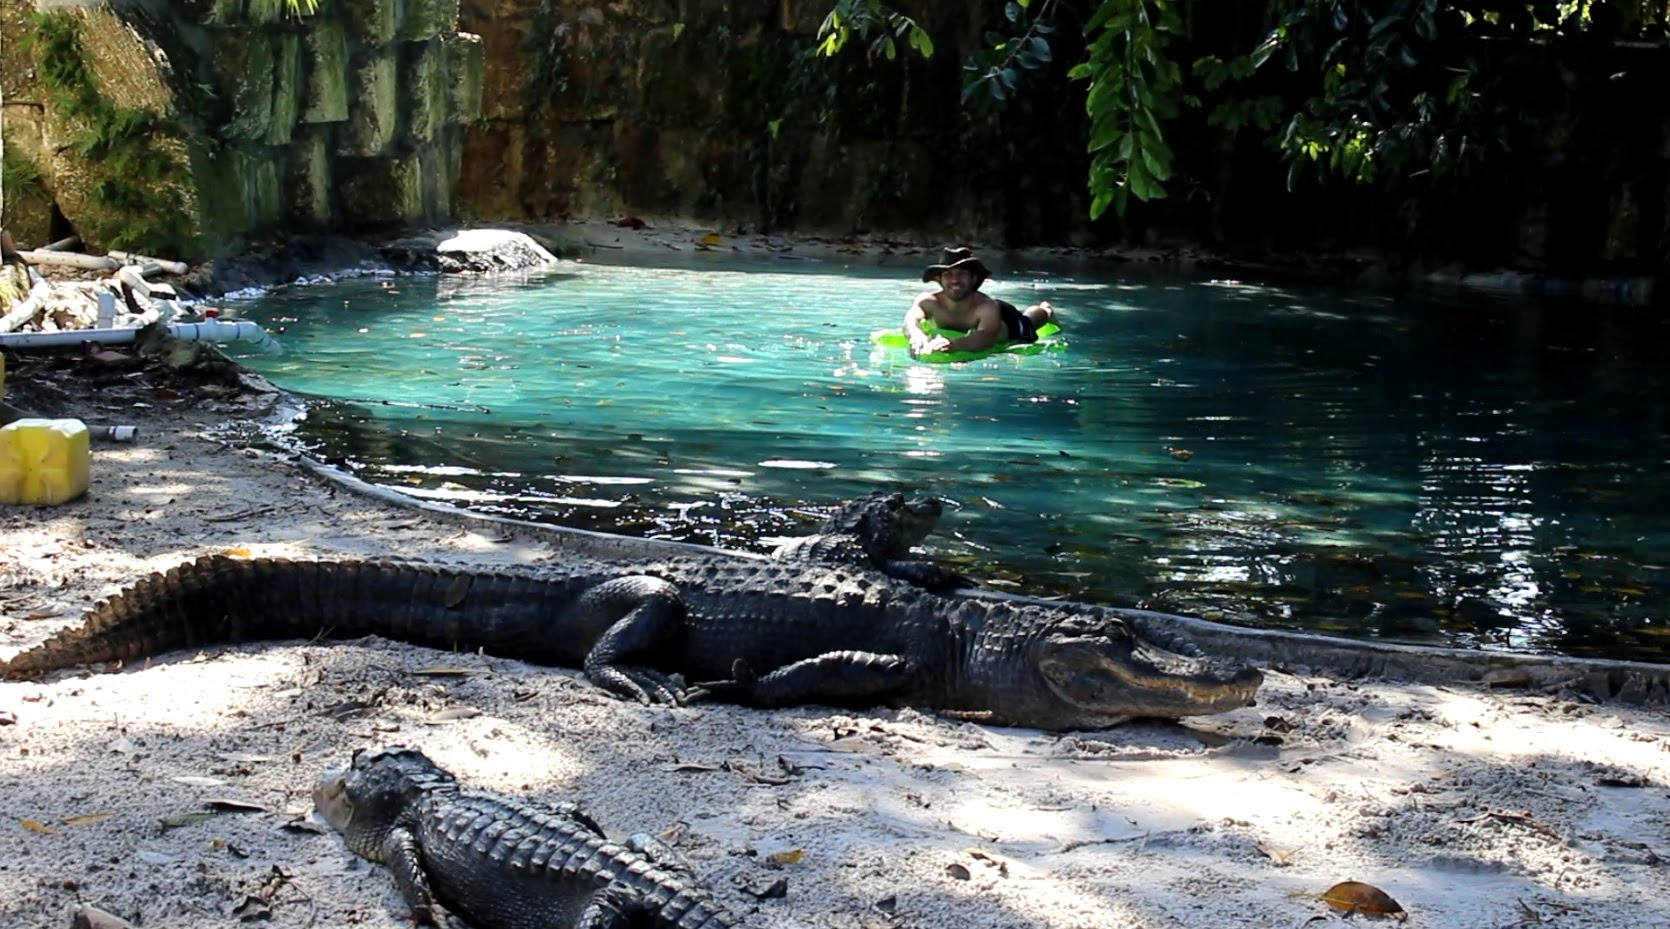 Man swims through pool of alligators on blow up crocodile Blow up alligator for swimming pool